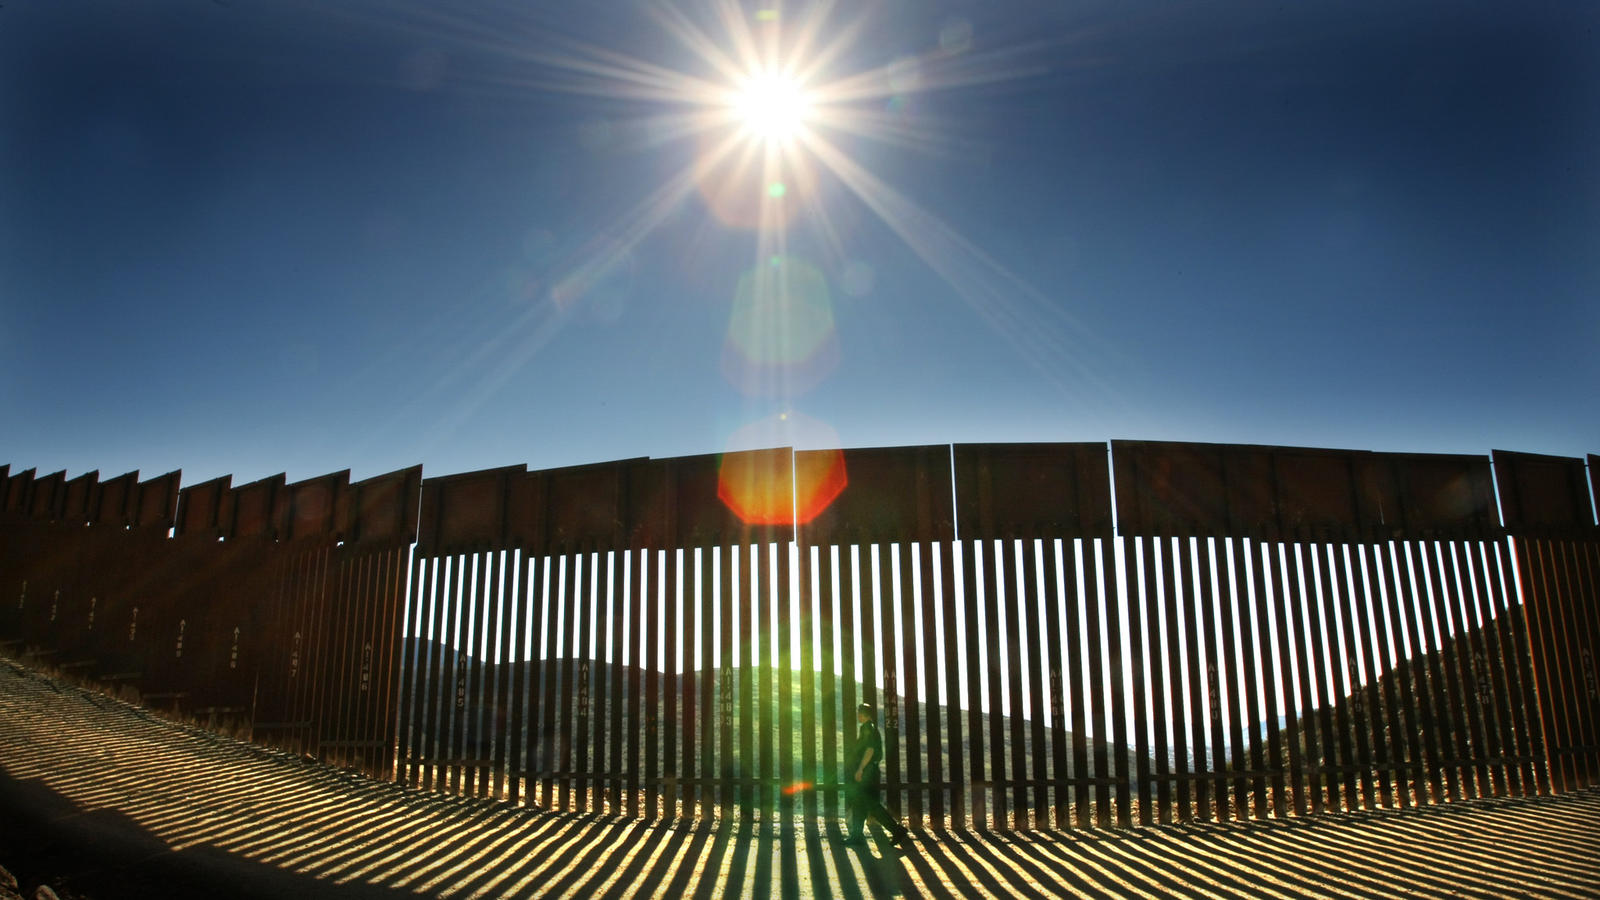 A portion of the U.S.-Mexico border fence at Otay Mountain, Calif. (Don Bartletti / Los Angeles Times)